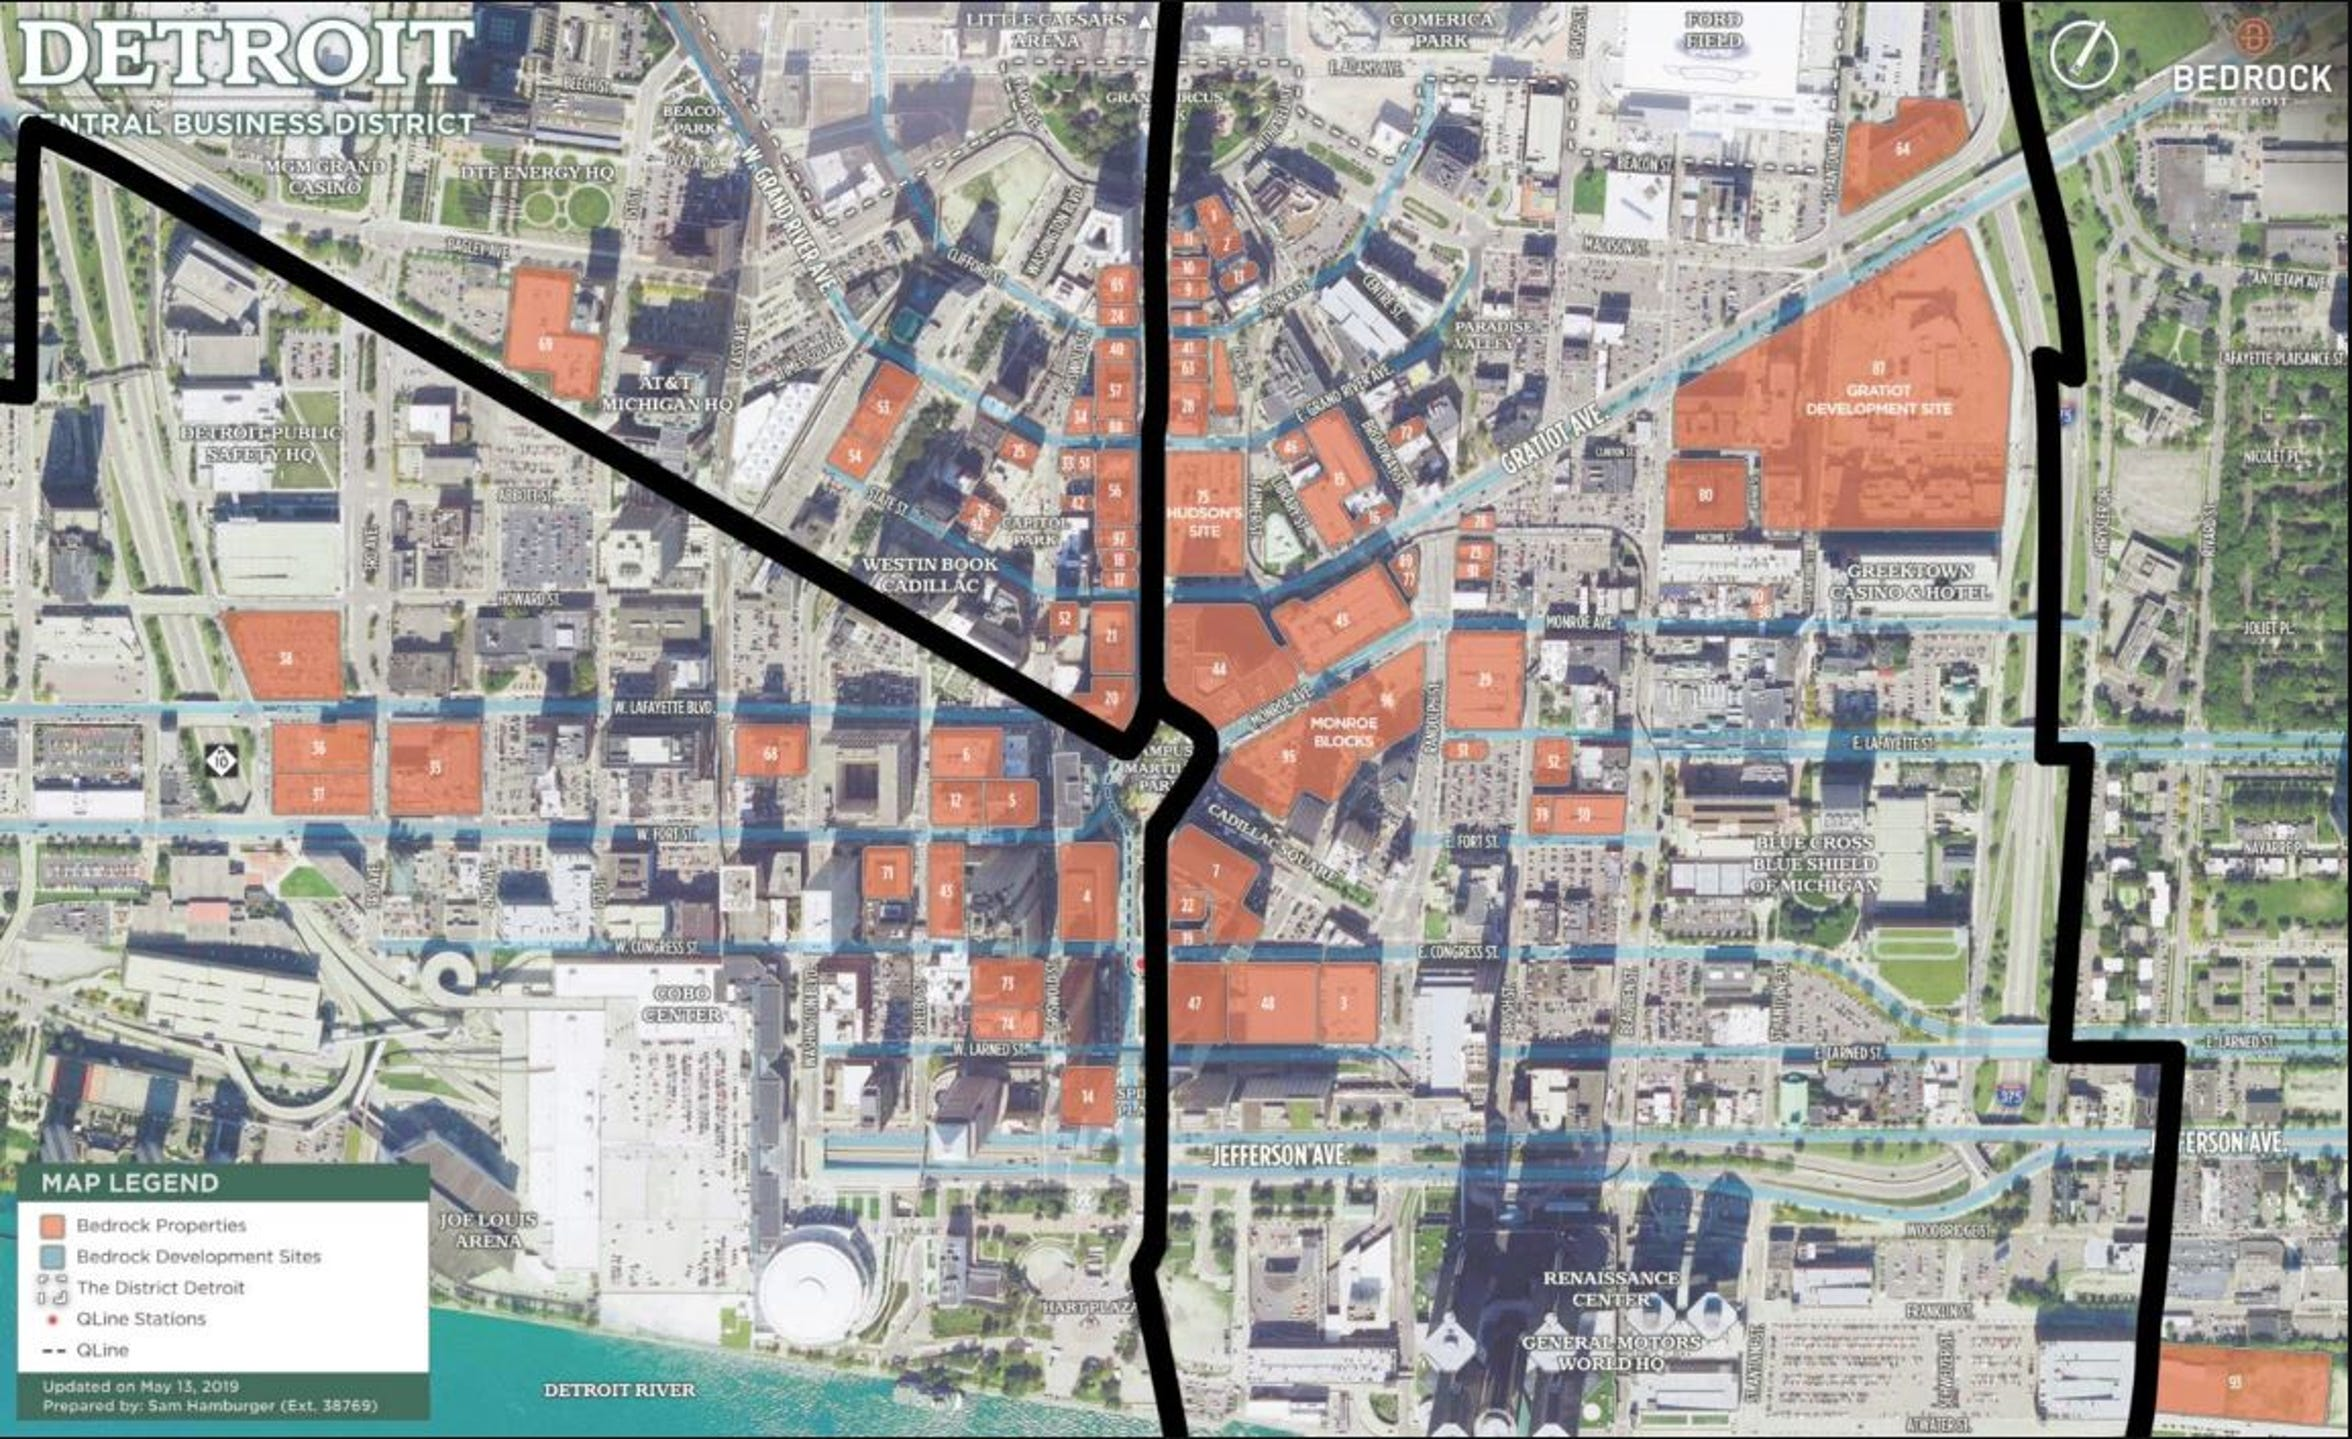 A Bedrock Detroit map shows properties owned by Dan Gilbert in orange, part of an estimated $3 billion in real estate investments he's made in the city. The lower left census tract was named an opportunity zone despite being too wealthy to qualify for the program. (Black lines added by ProPublica to roughly show tract boundaries.)